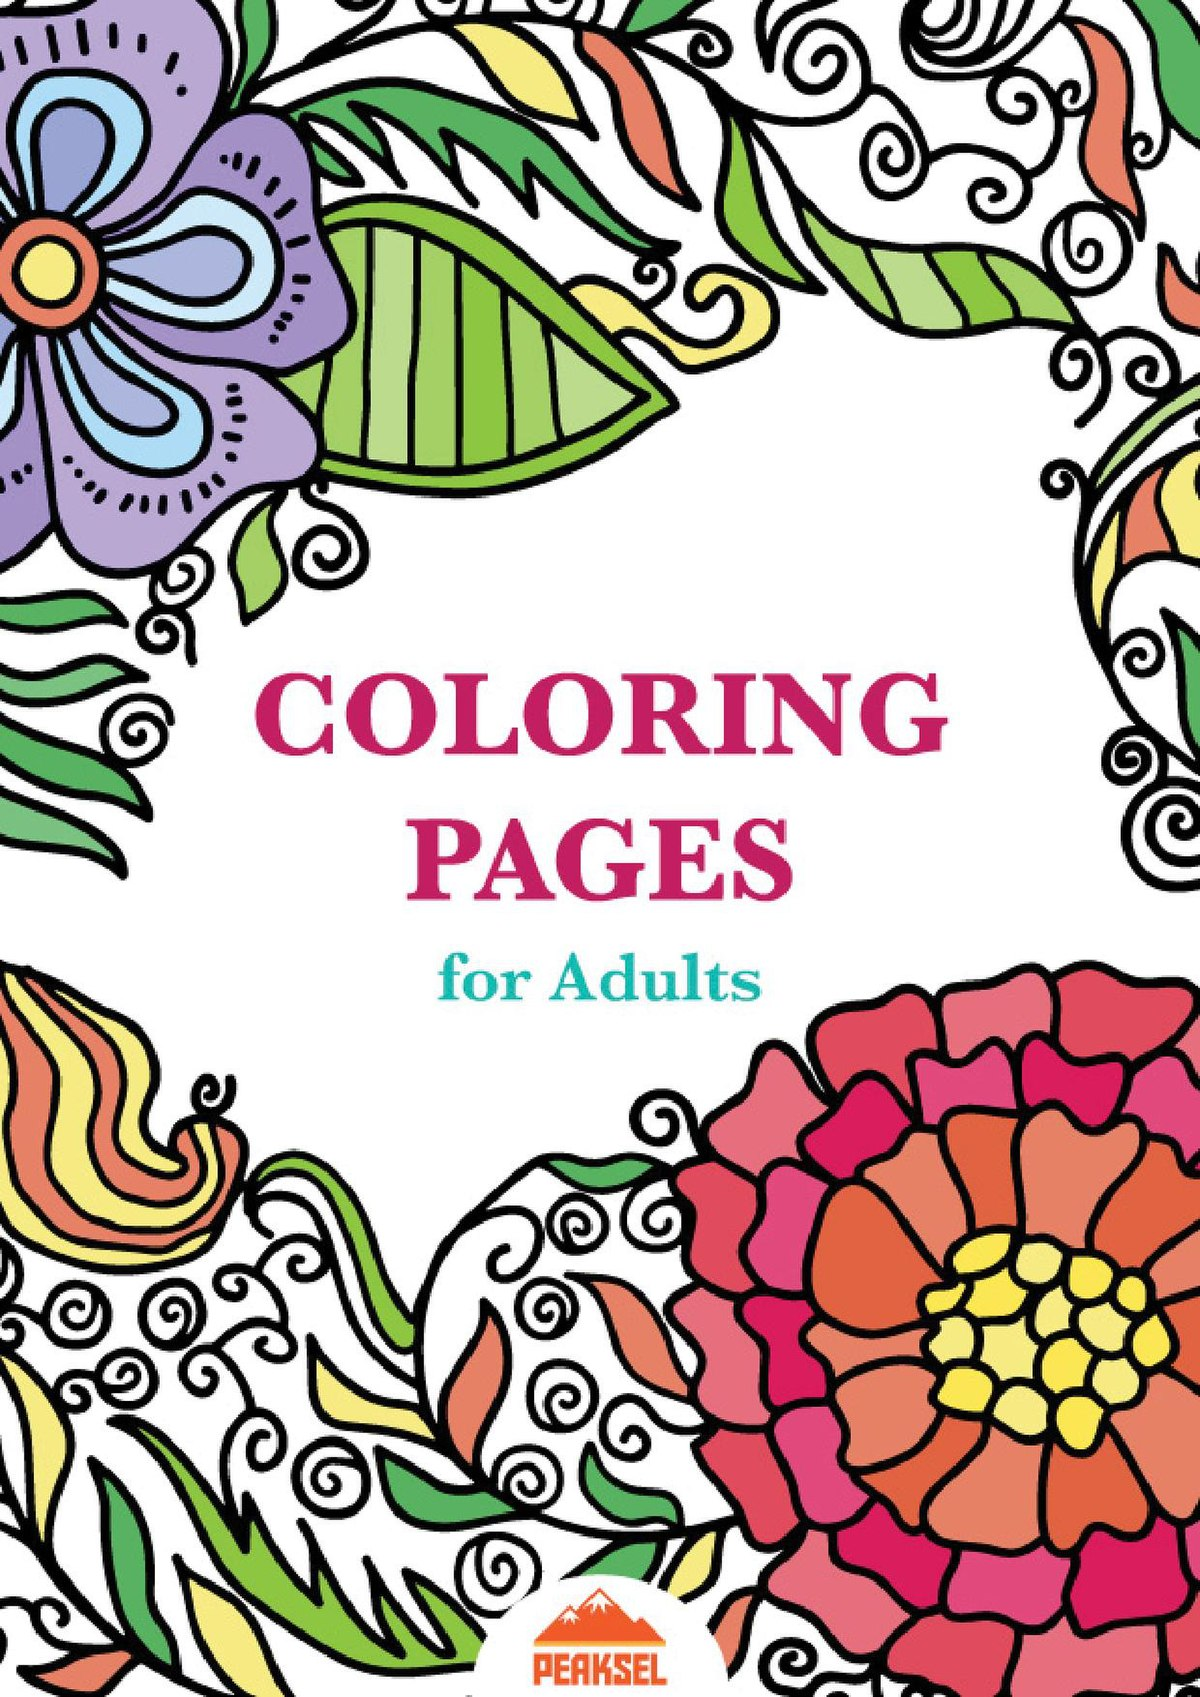 File:Printable Coloring Pages for Adults - Free Adult Coloring ...